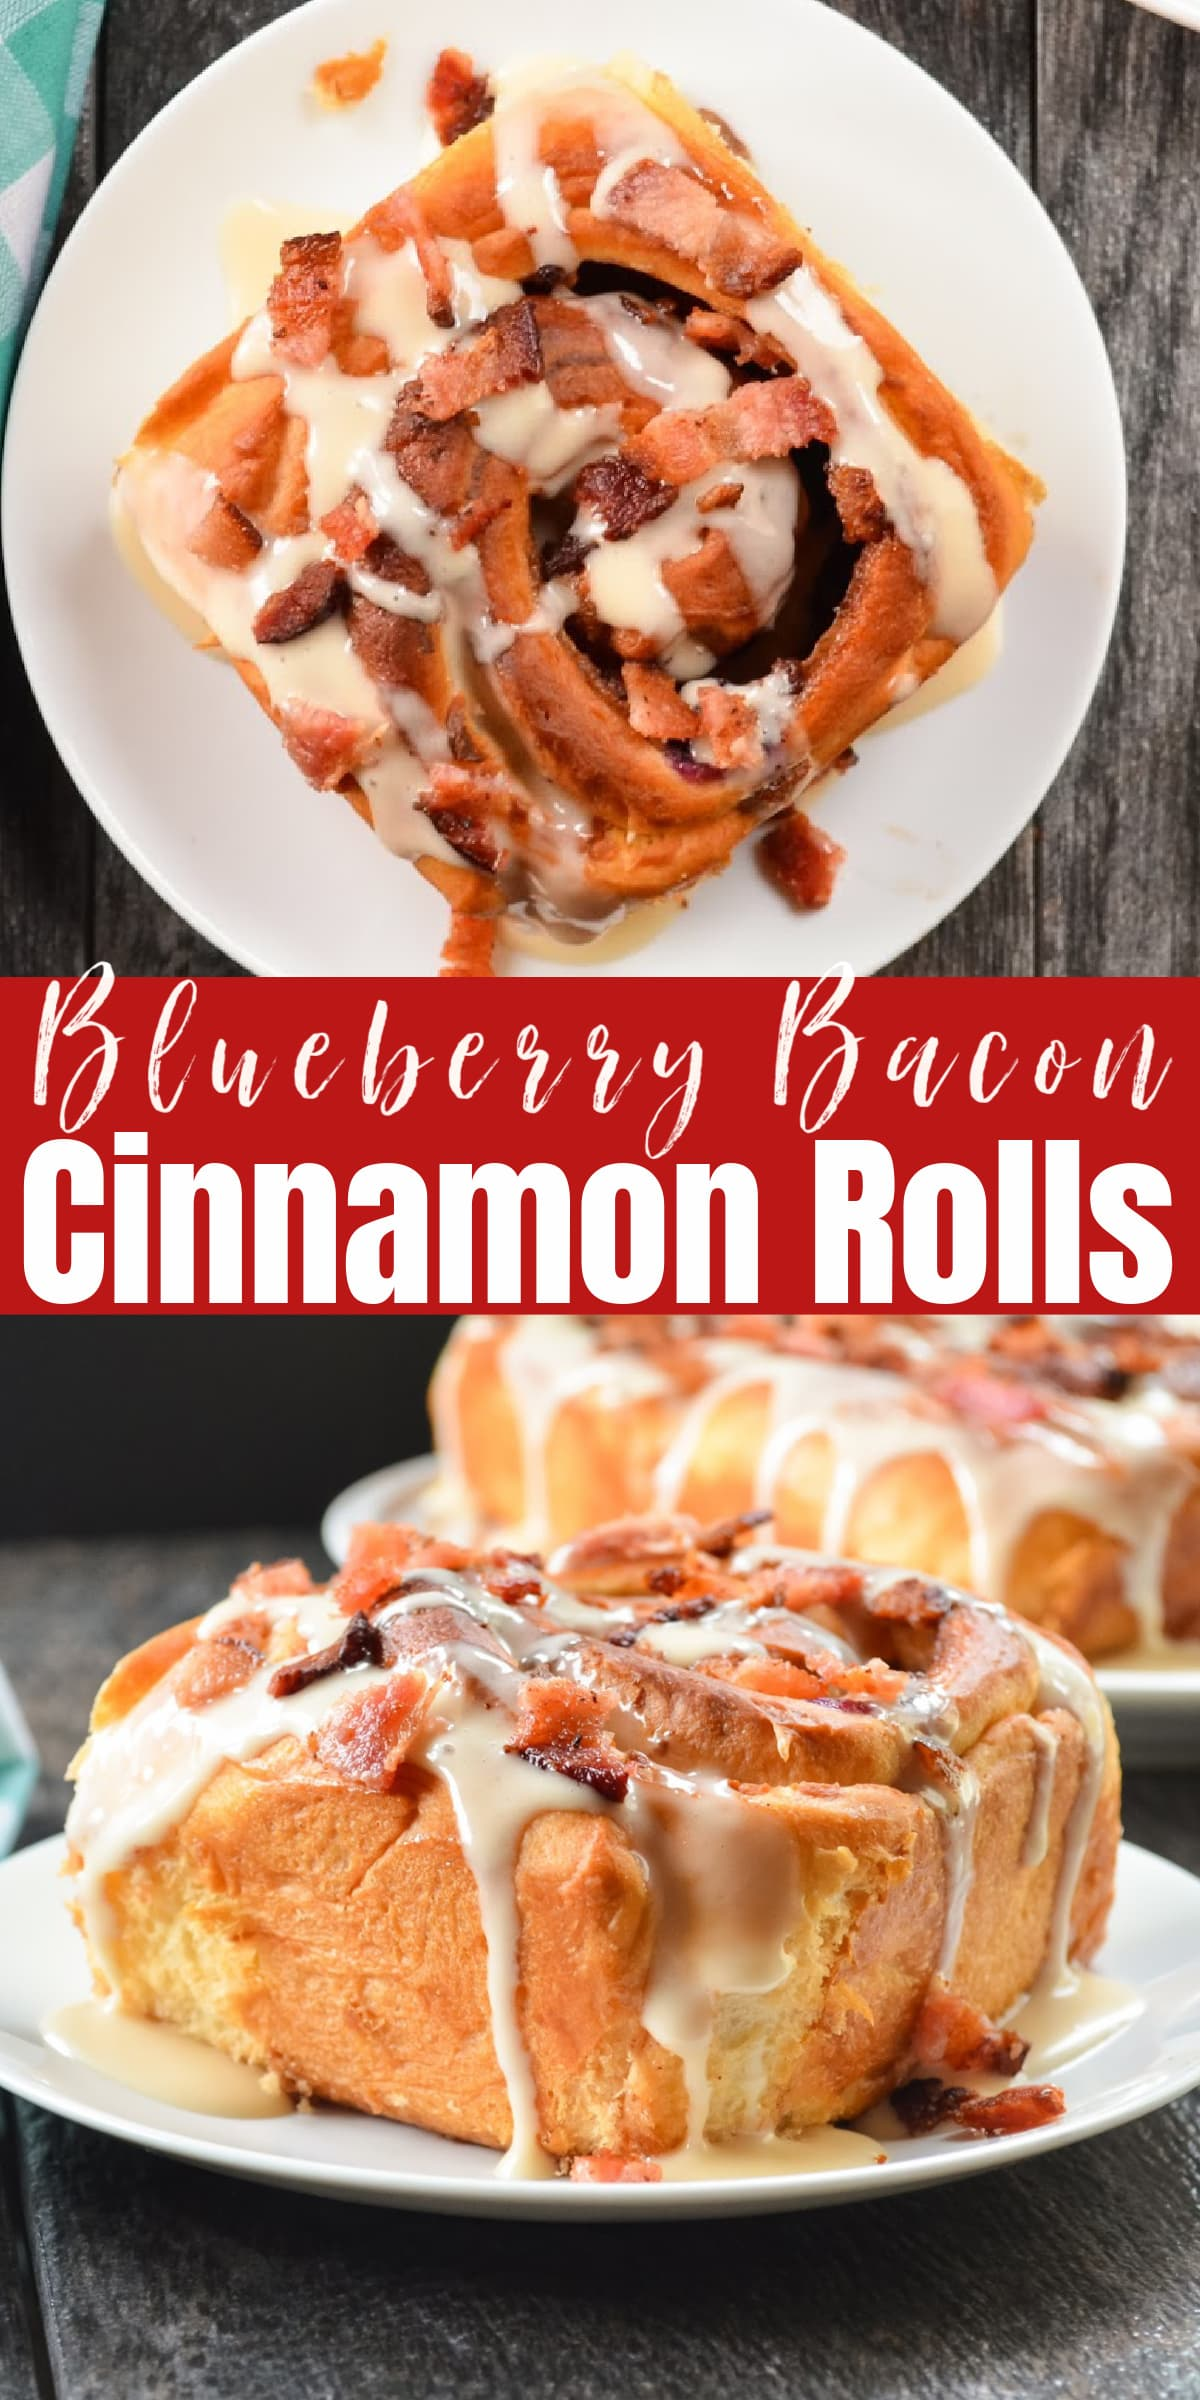 A overhead shot on top of Blueberry Bacon Cinnamon Roll and a side shot on the bottom with a red band between the two photos and white text blueberry bacon cinnamon rolls.